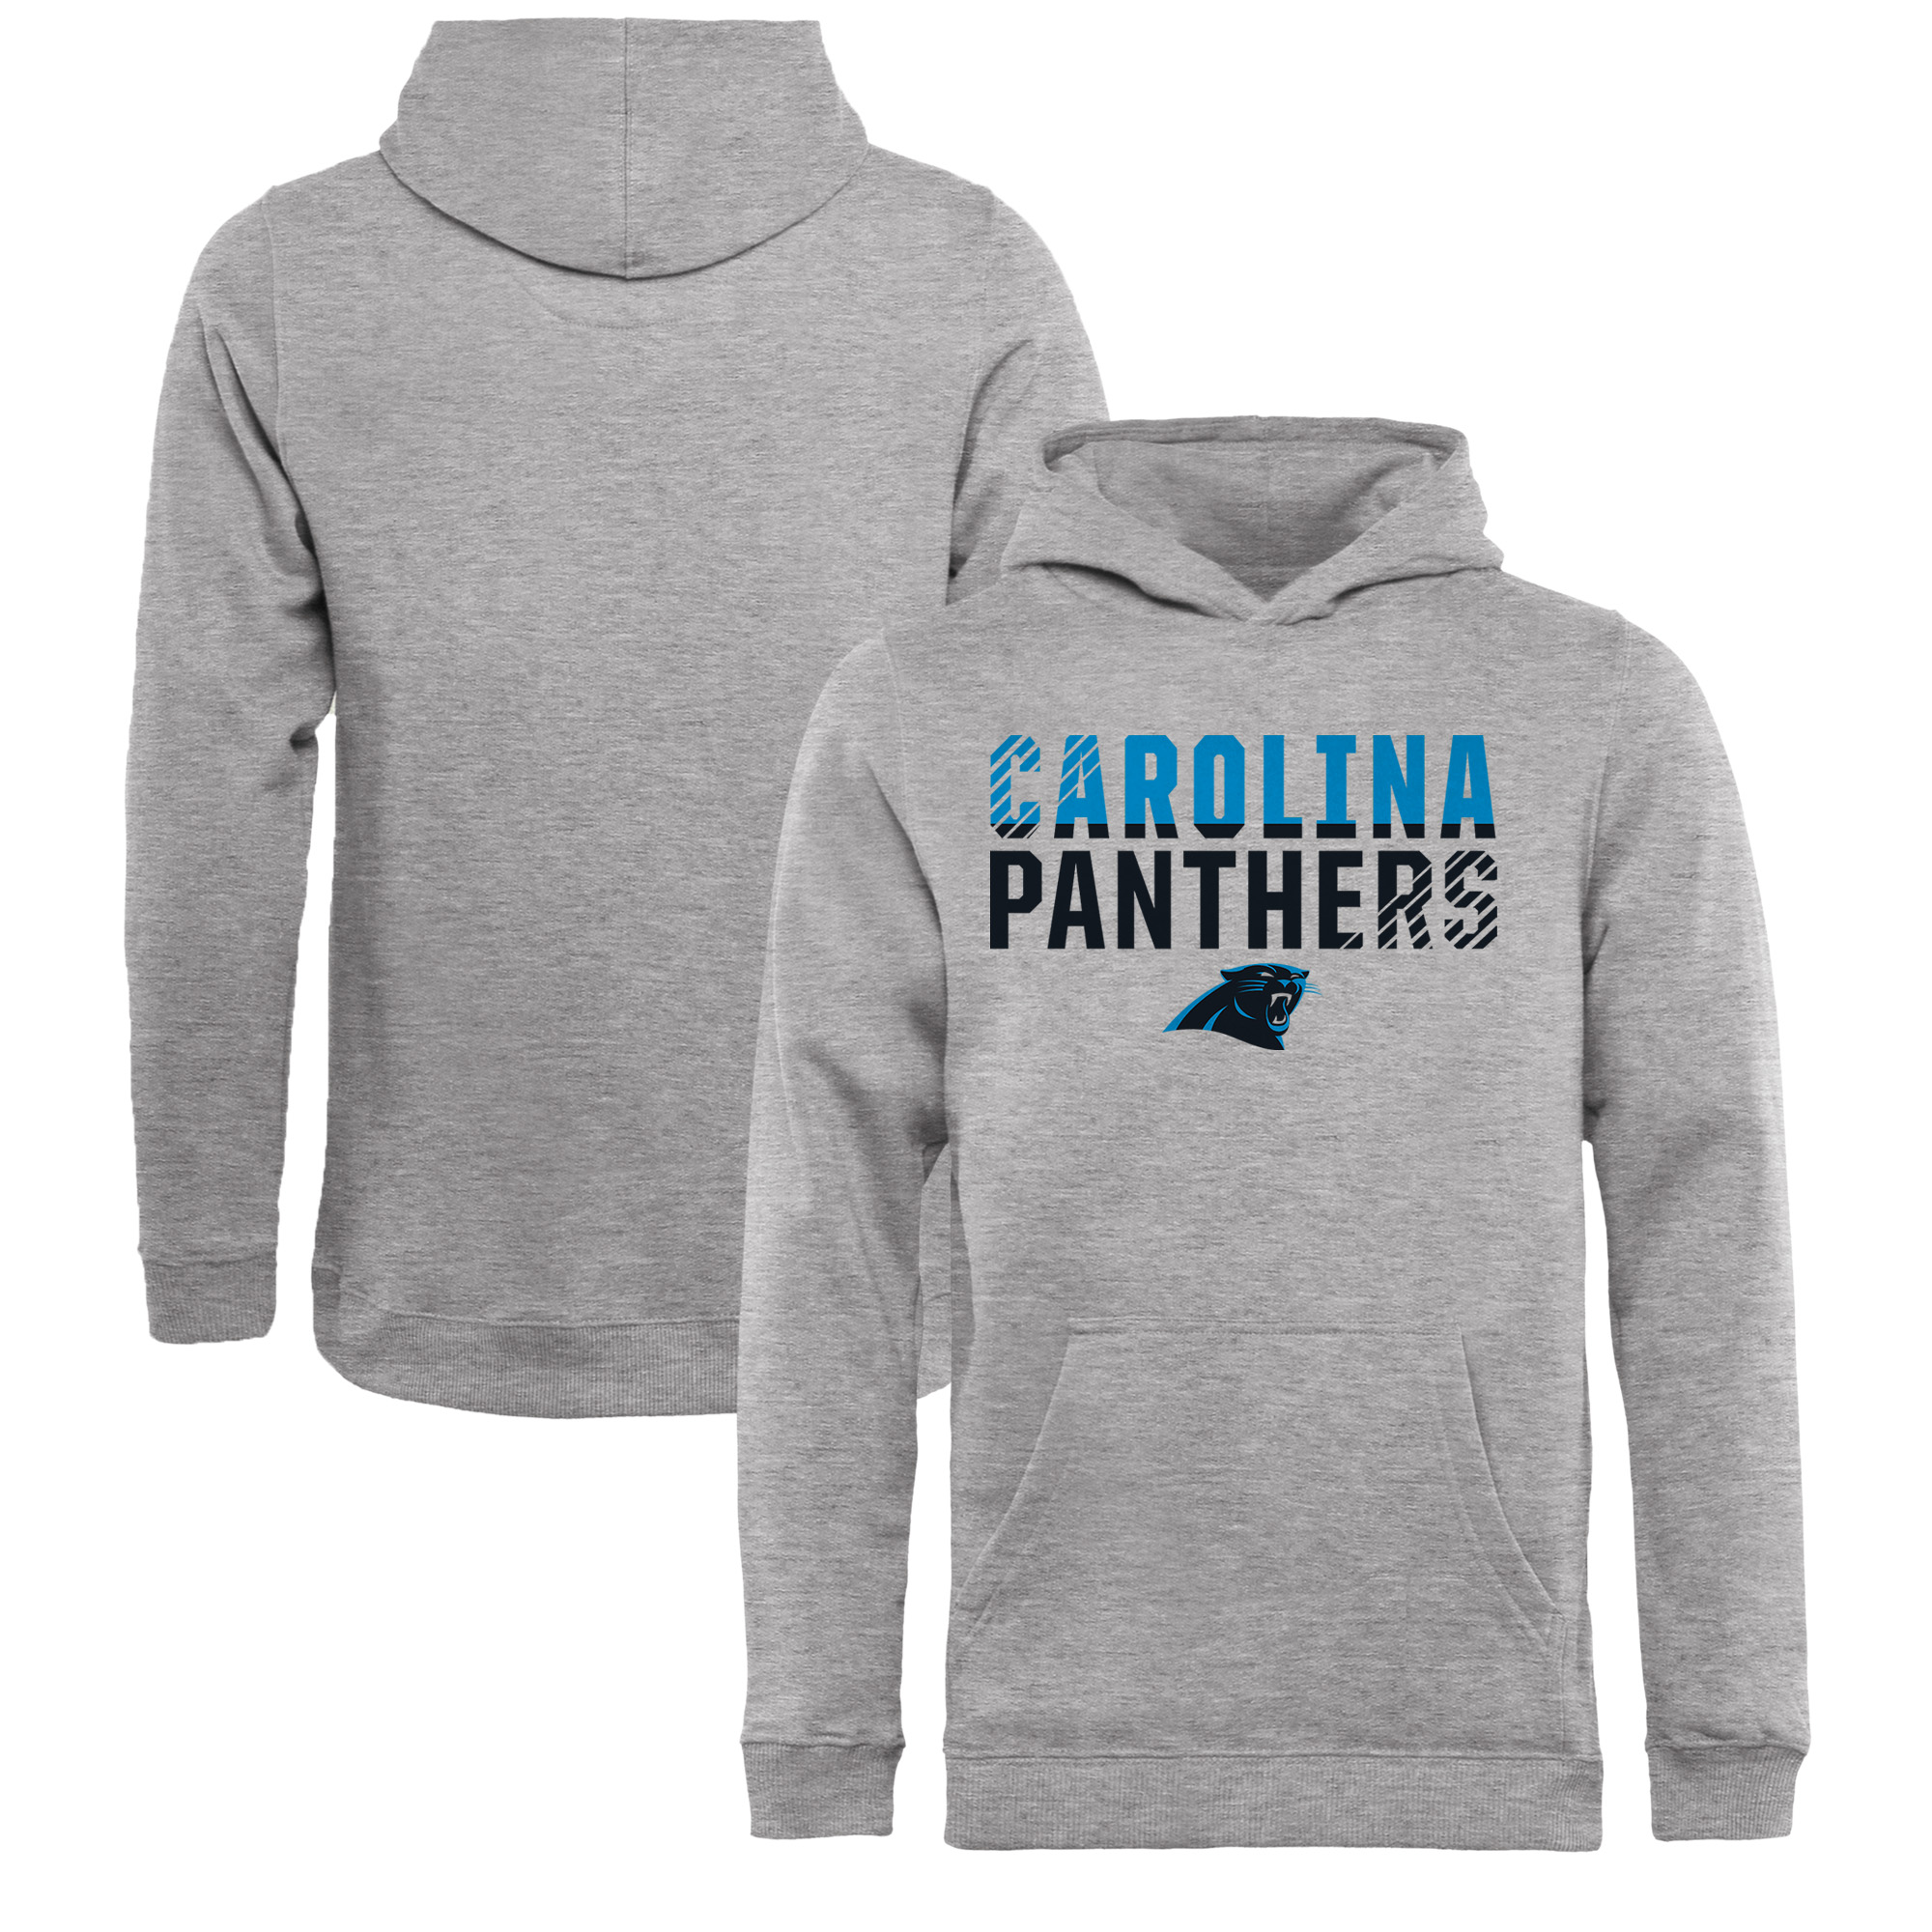 Carolina Panthers NFL Pro Line by Fanatics Branded Youth Iconic Collection Fade Out Pullover Hoodie - Ash